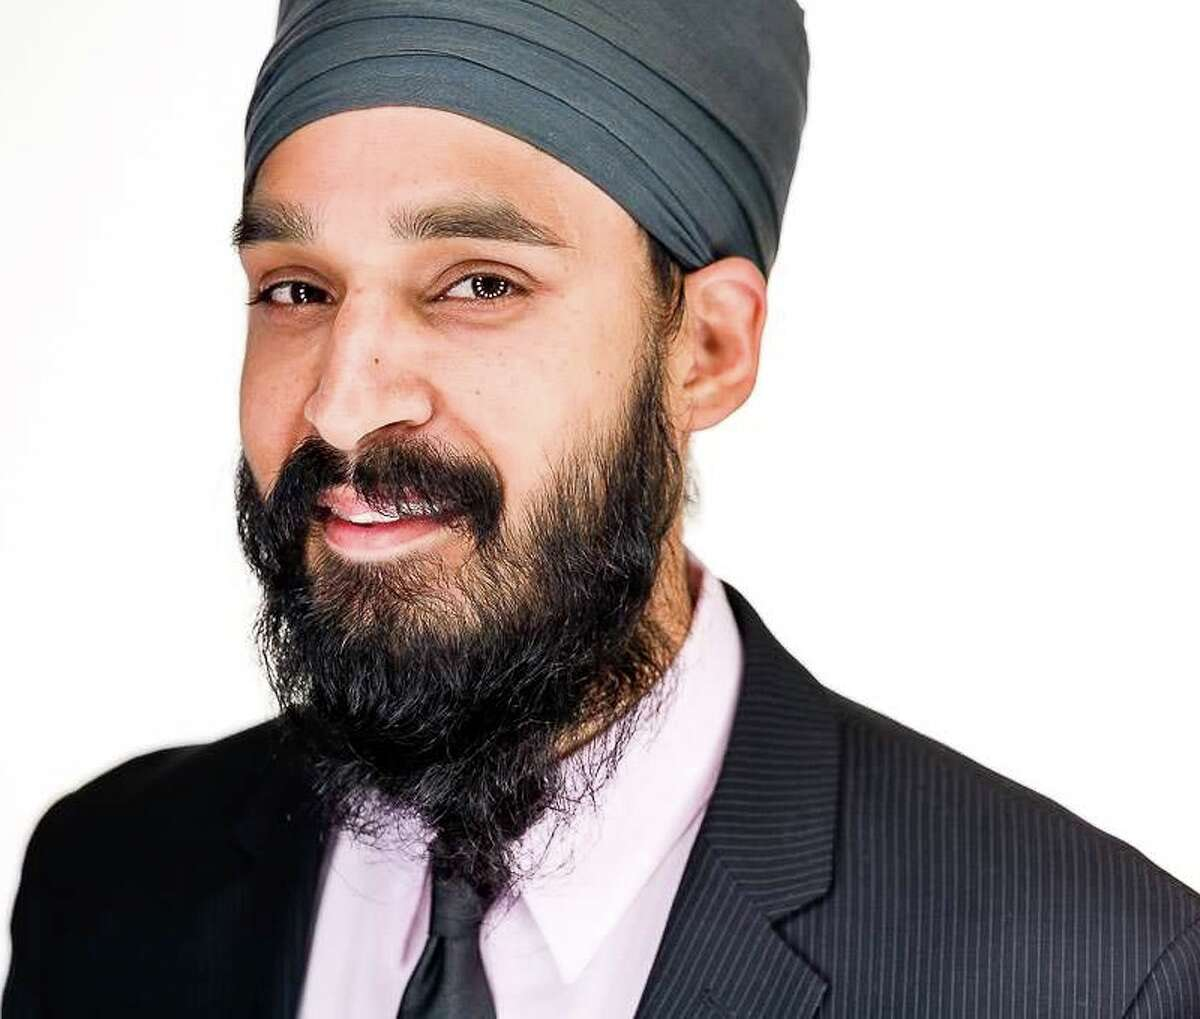 Simran Jeet Singh, a Sikh assistant religion professor at Trinity University, penned a viral tweet on Tuesday describing his mom's reaction to the racism he receives online.